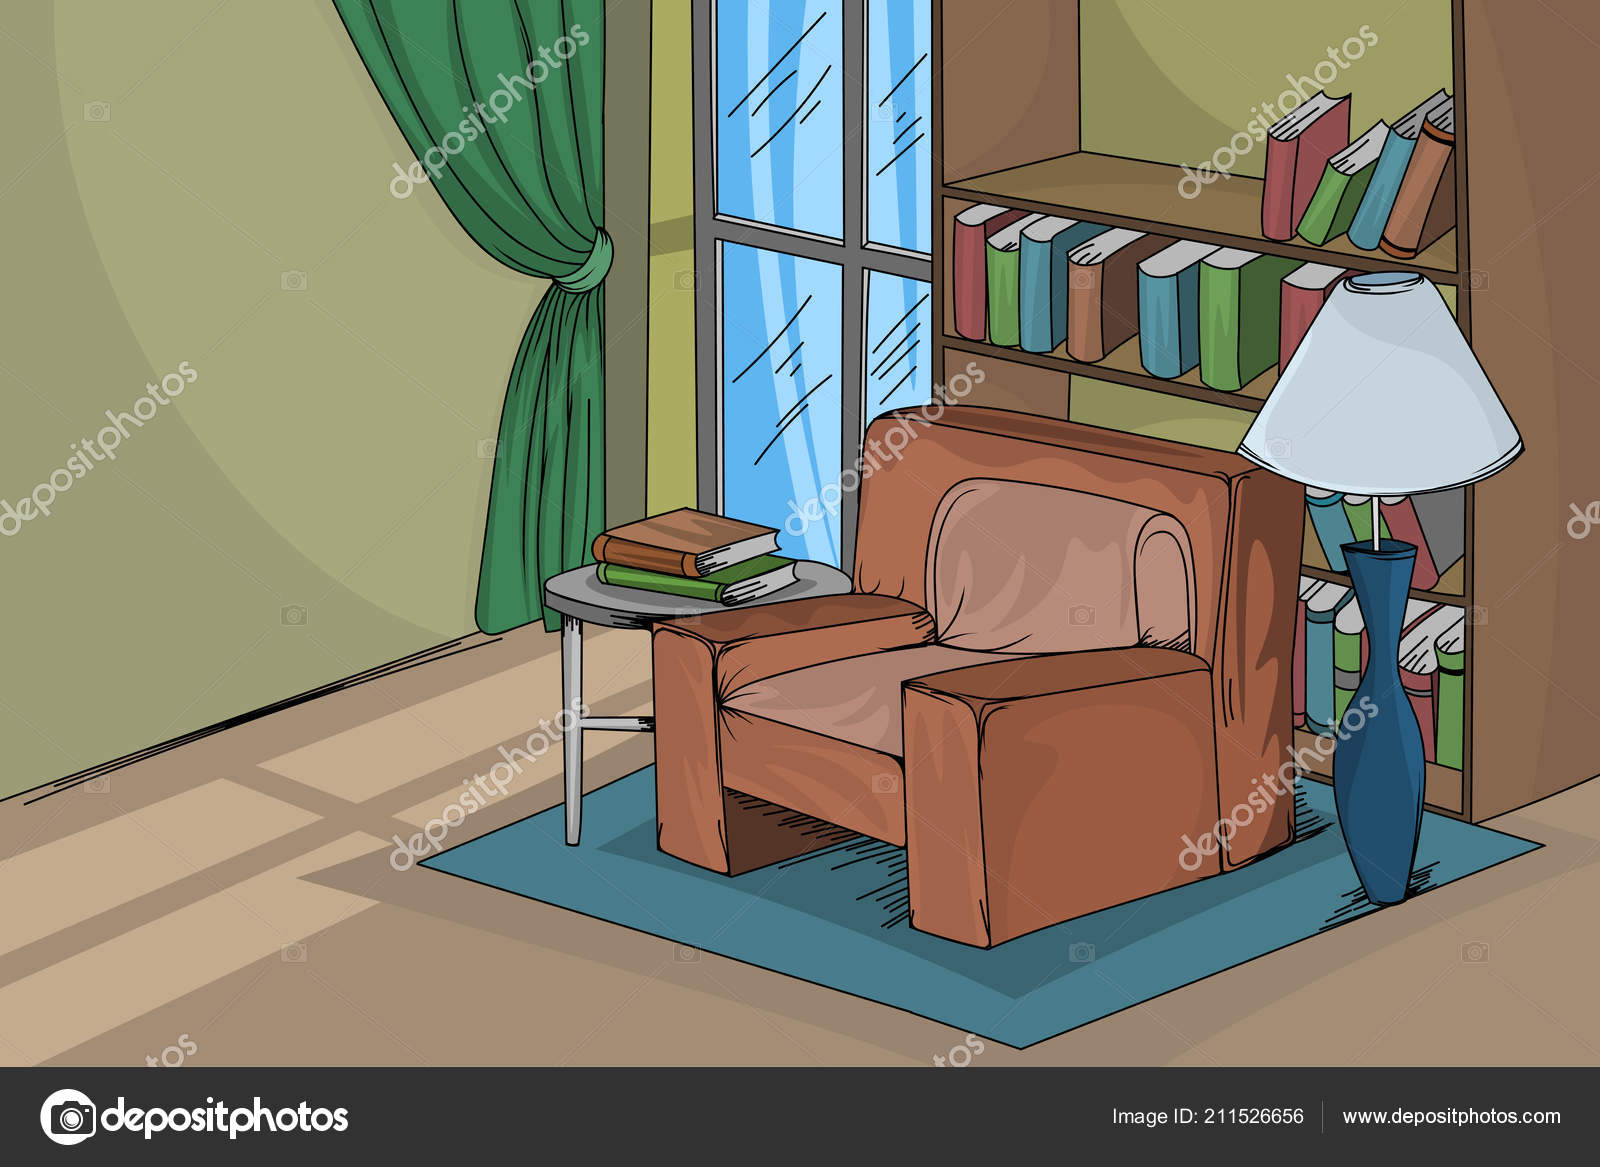 House Living Room Scene Vector Hand Drawing Interior Backgrounds Stock Vector C Mapichai 211526656